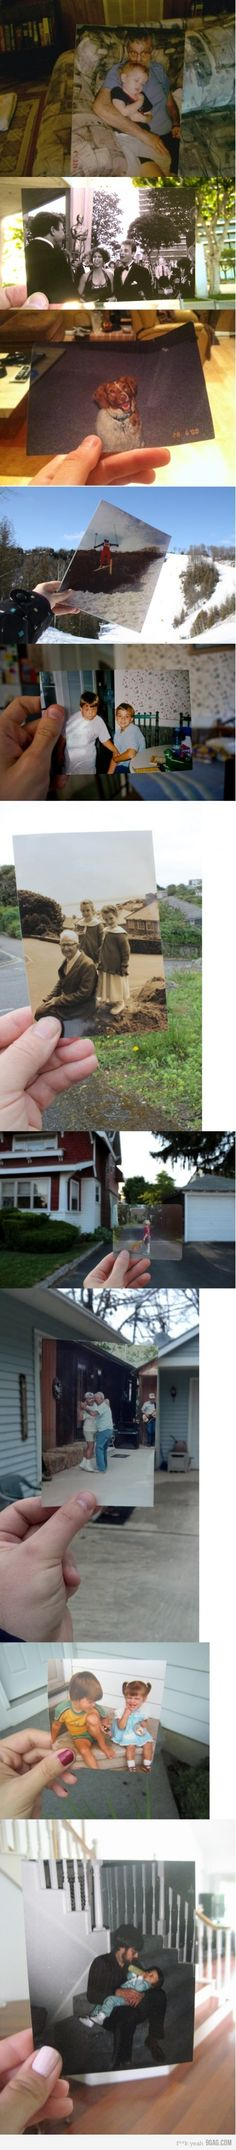 Dear Photograph, by Taylor Jones. Id love to do this with some old photos